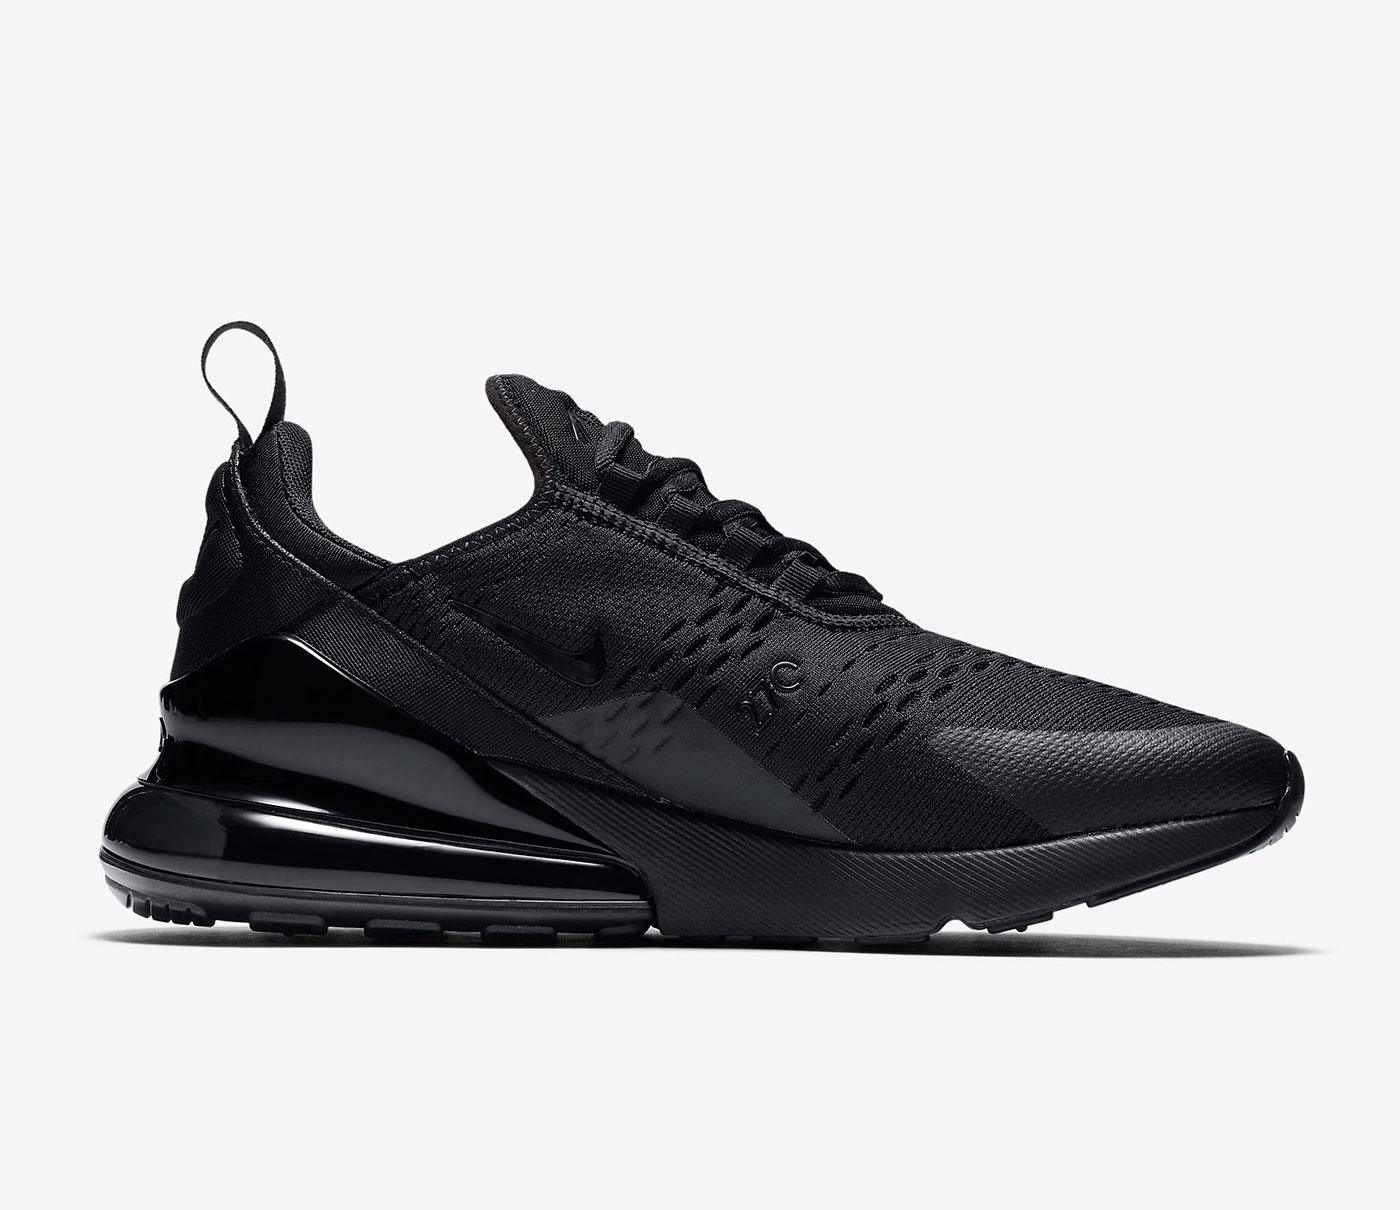 Air Max 270 - Blacked out